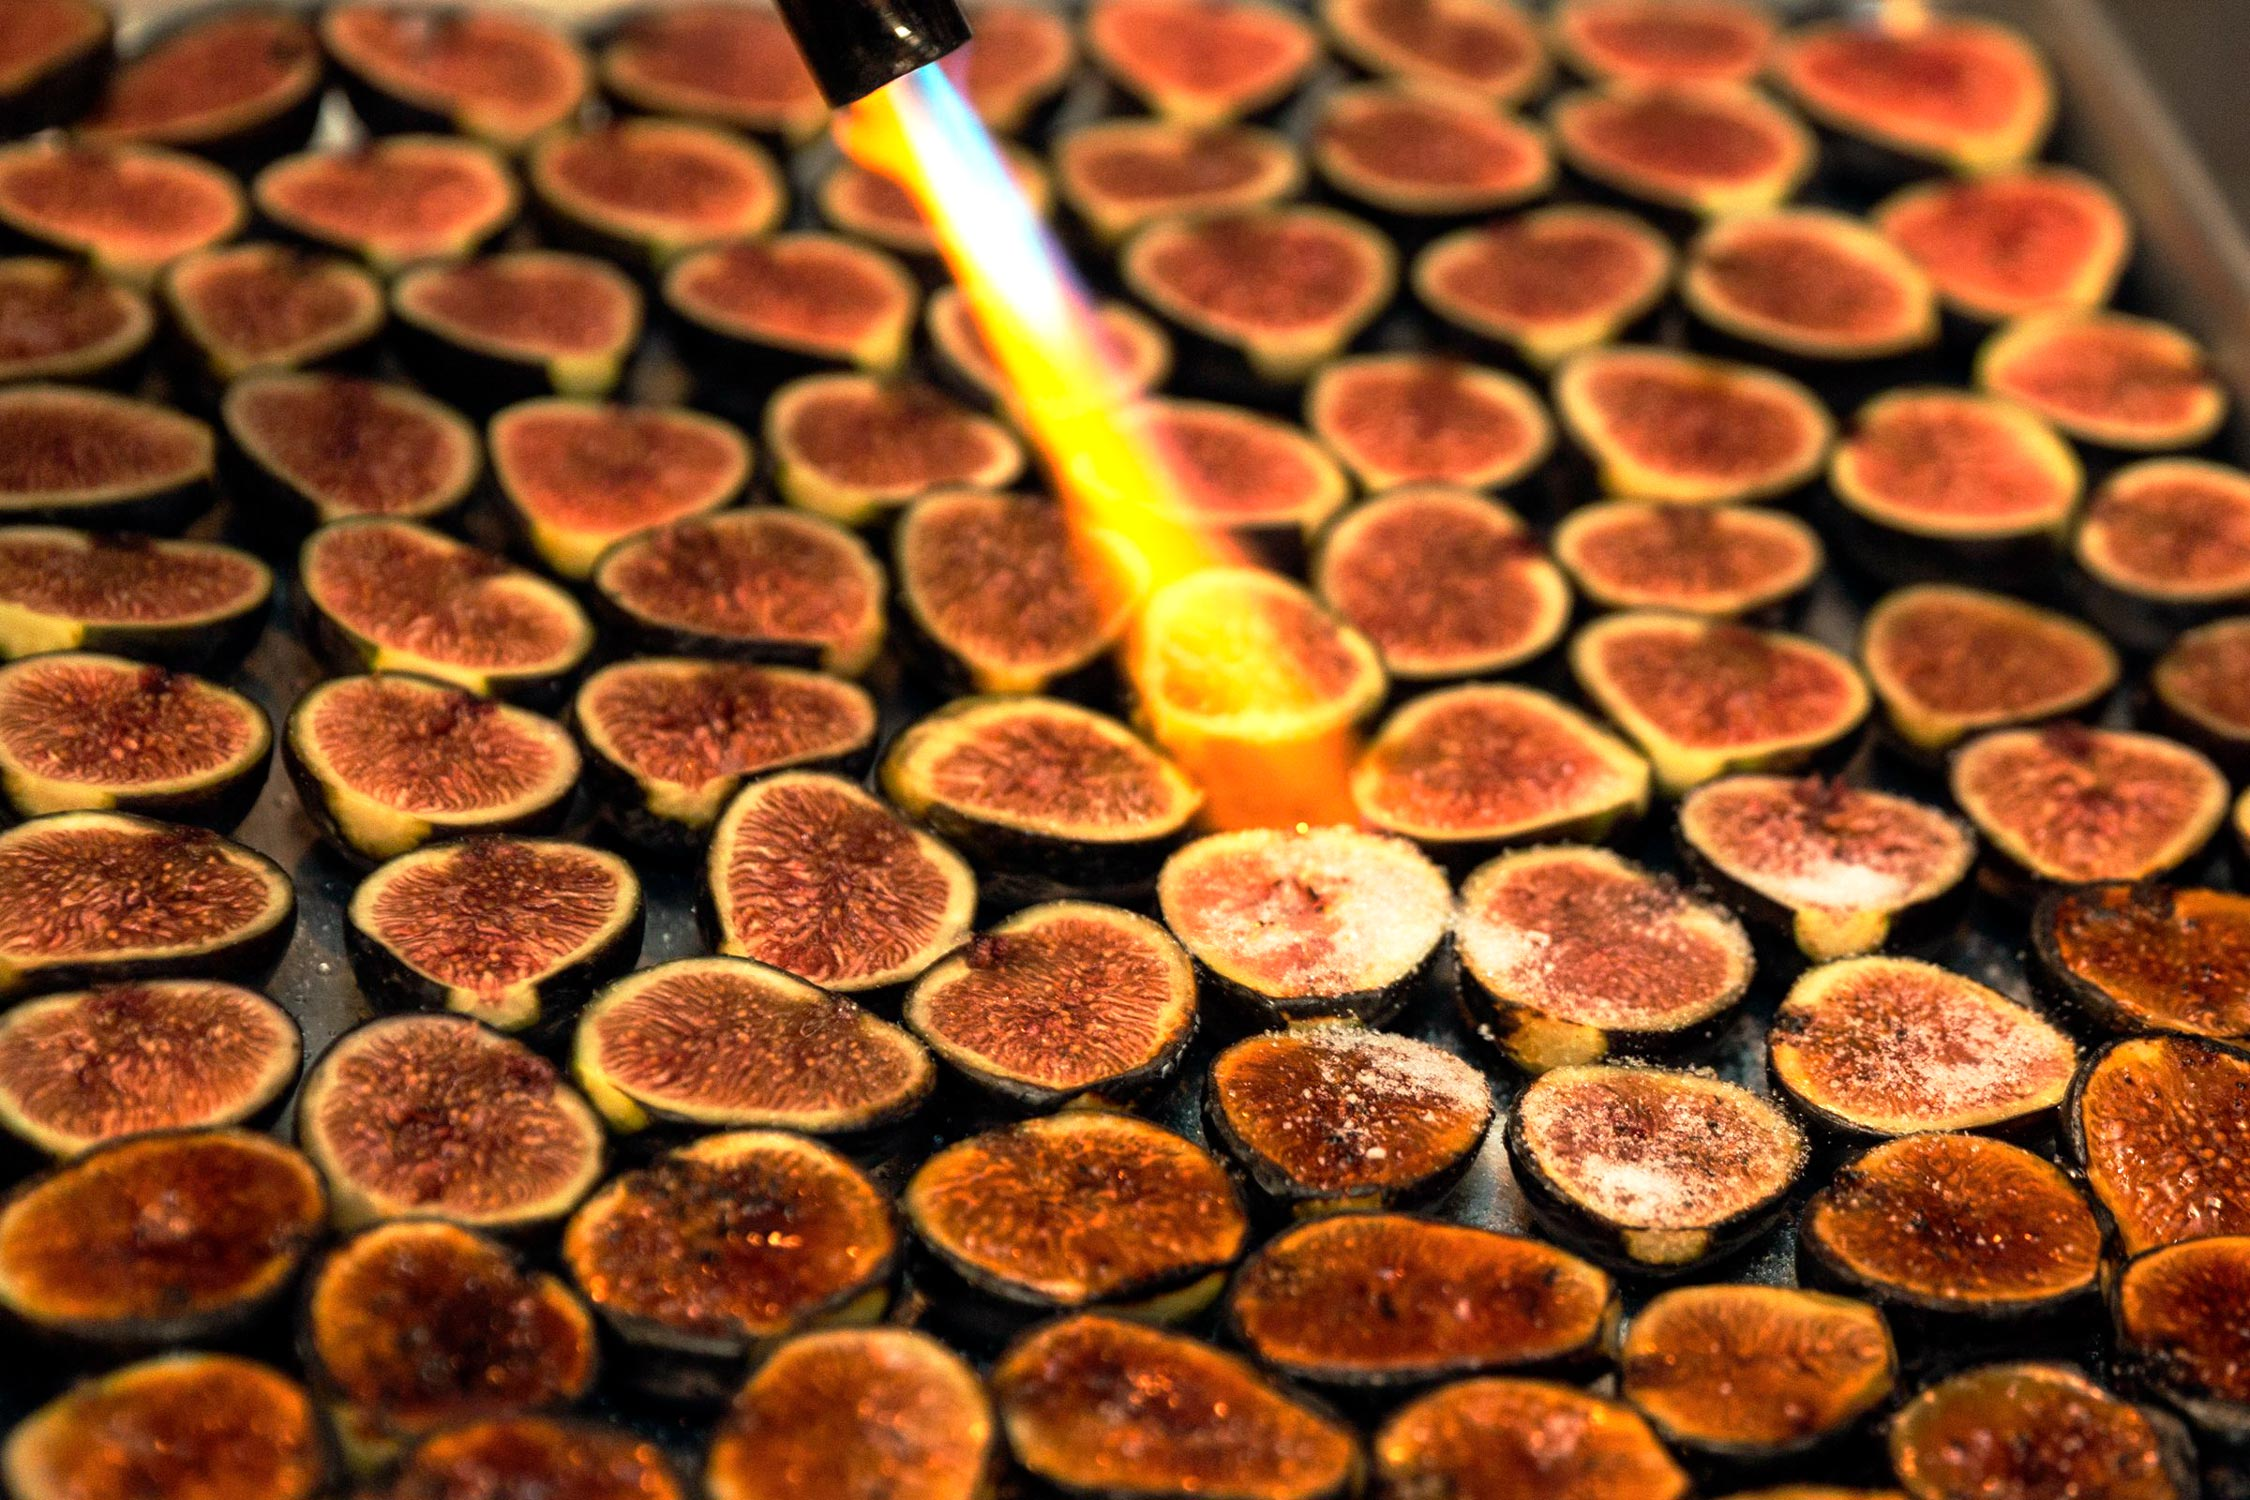 Caramelizing desserts on a tray